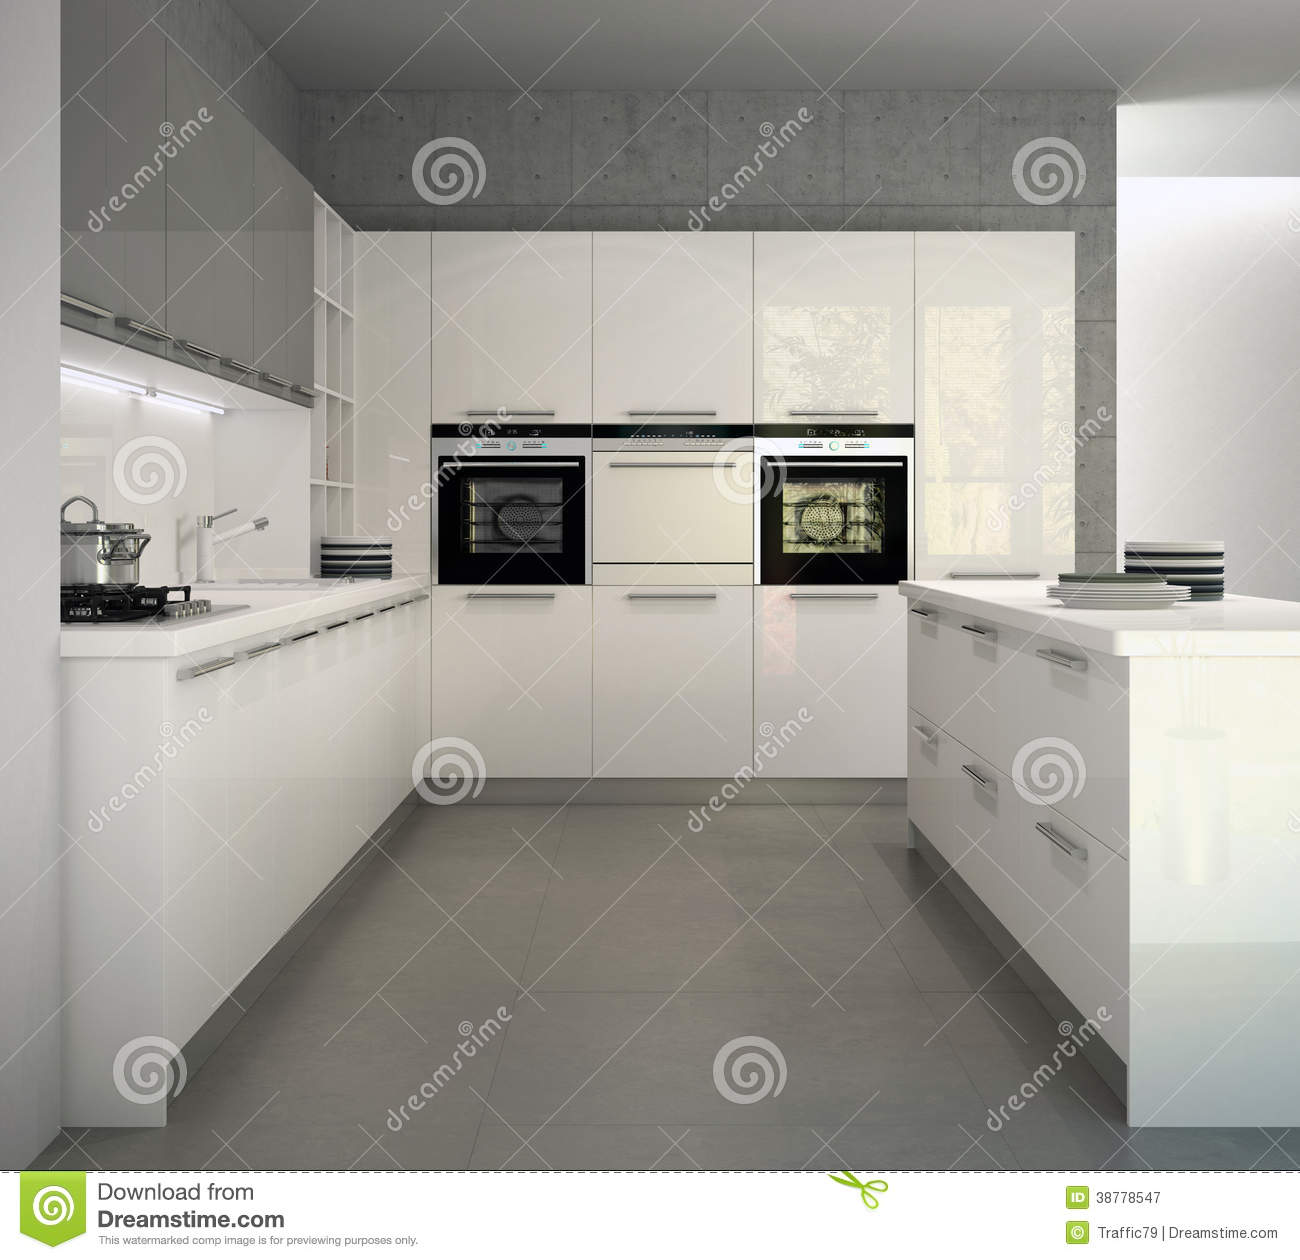 White glossy modern kitchen in an interior stock illustration ...